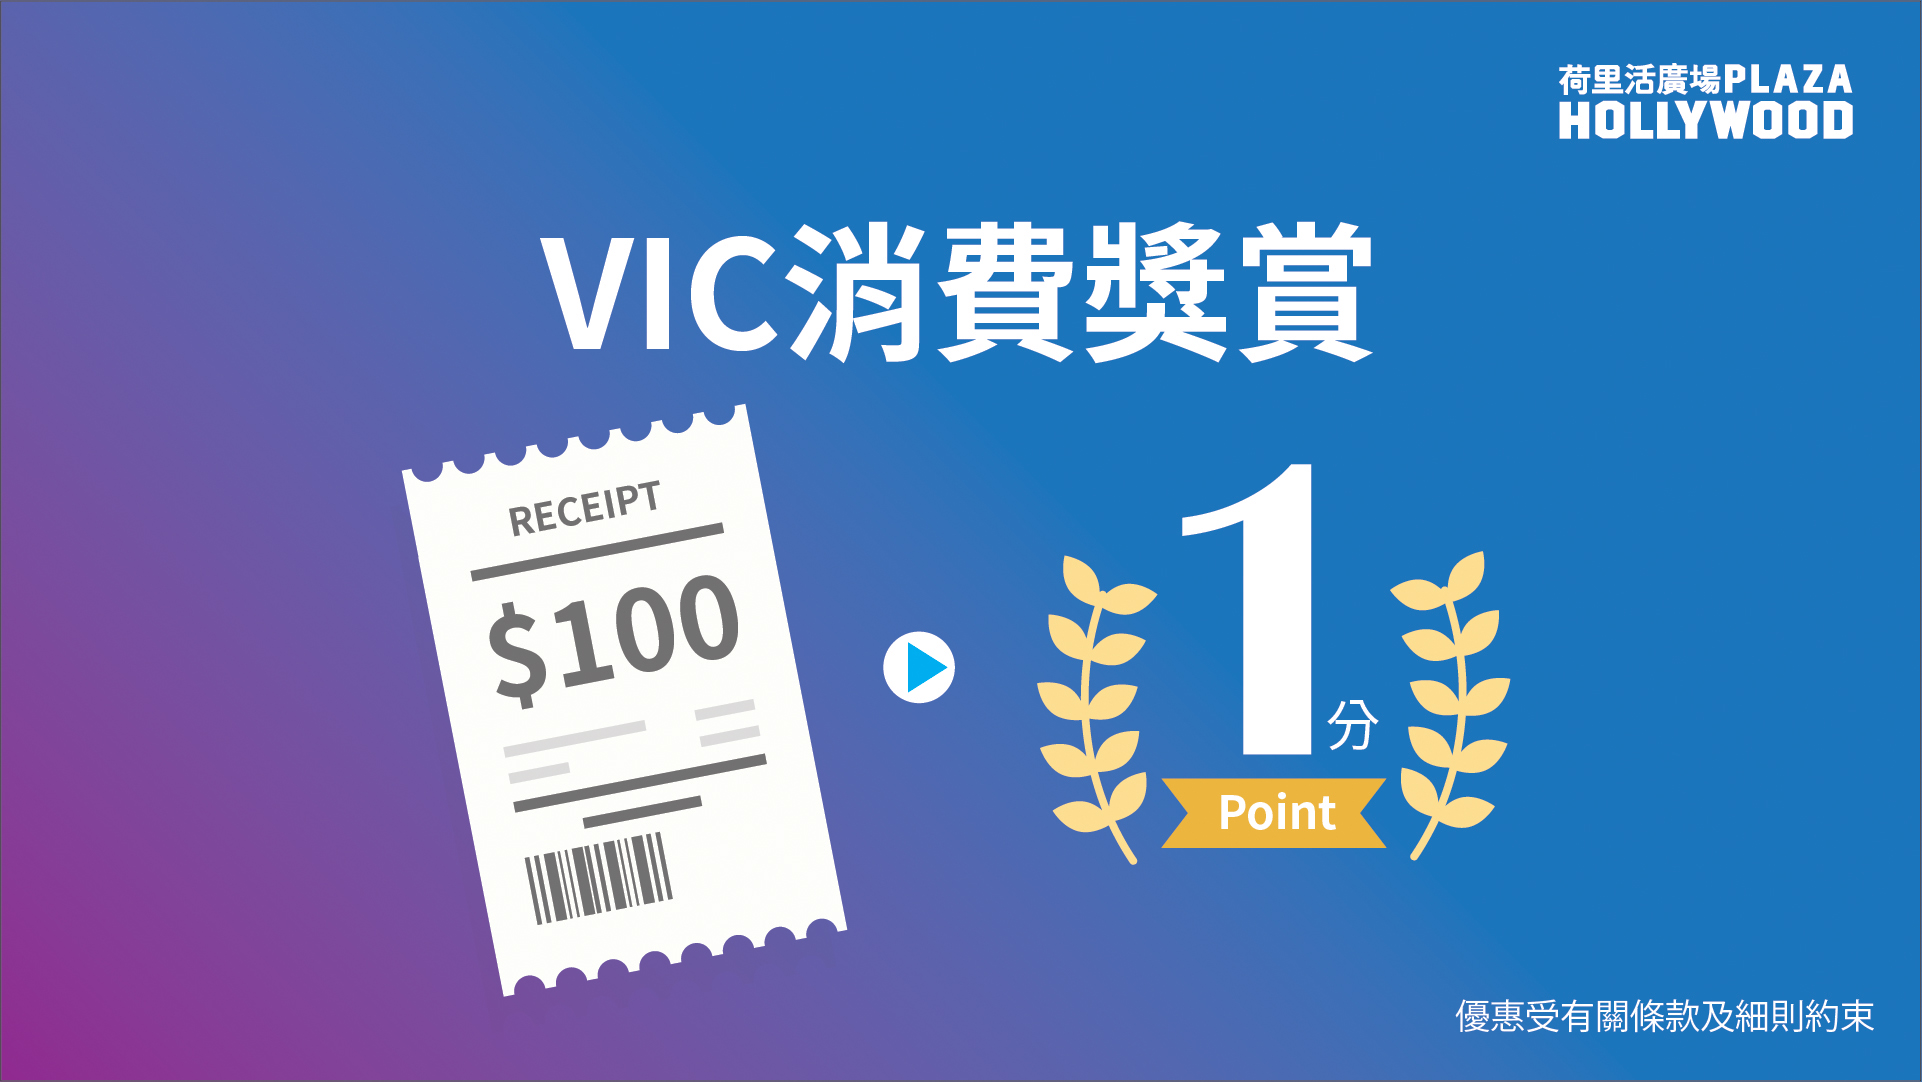 VIC special 1